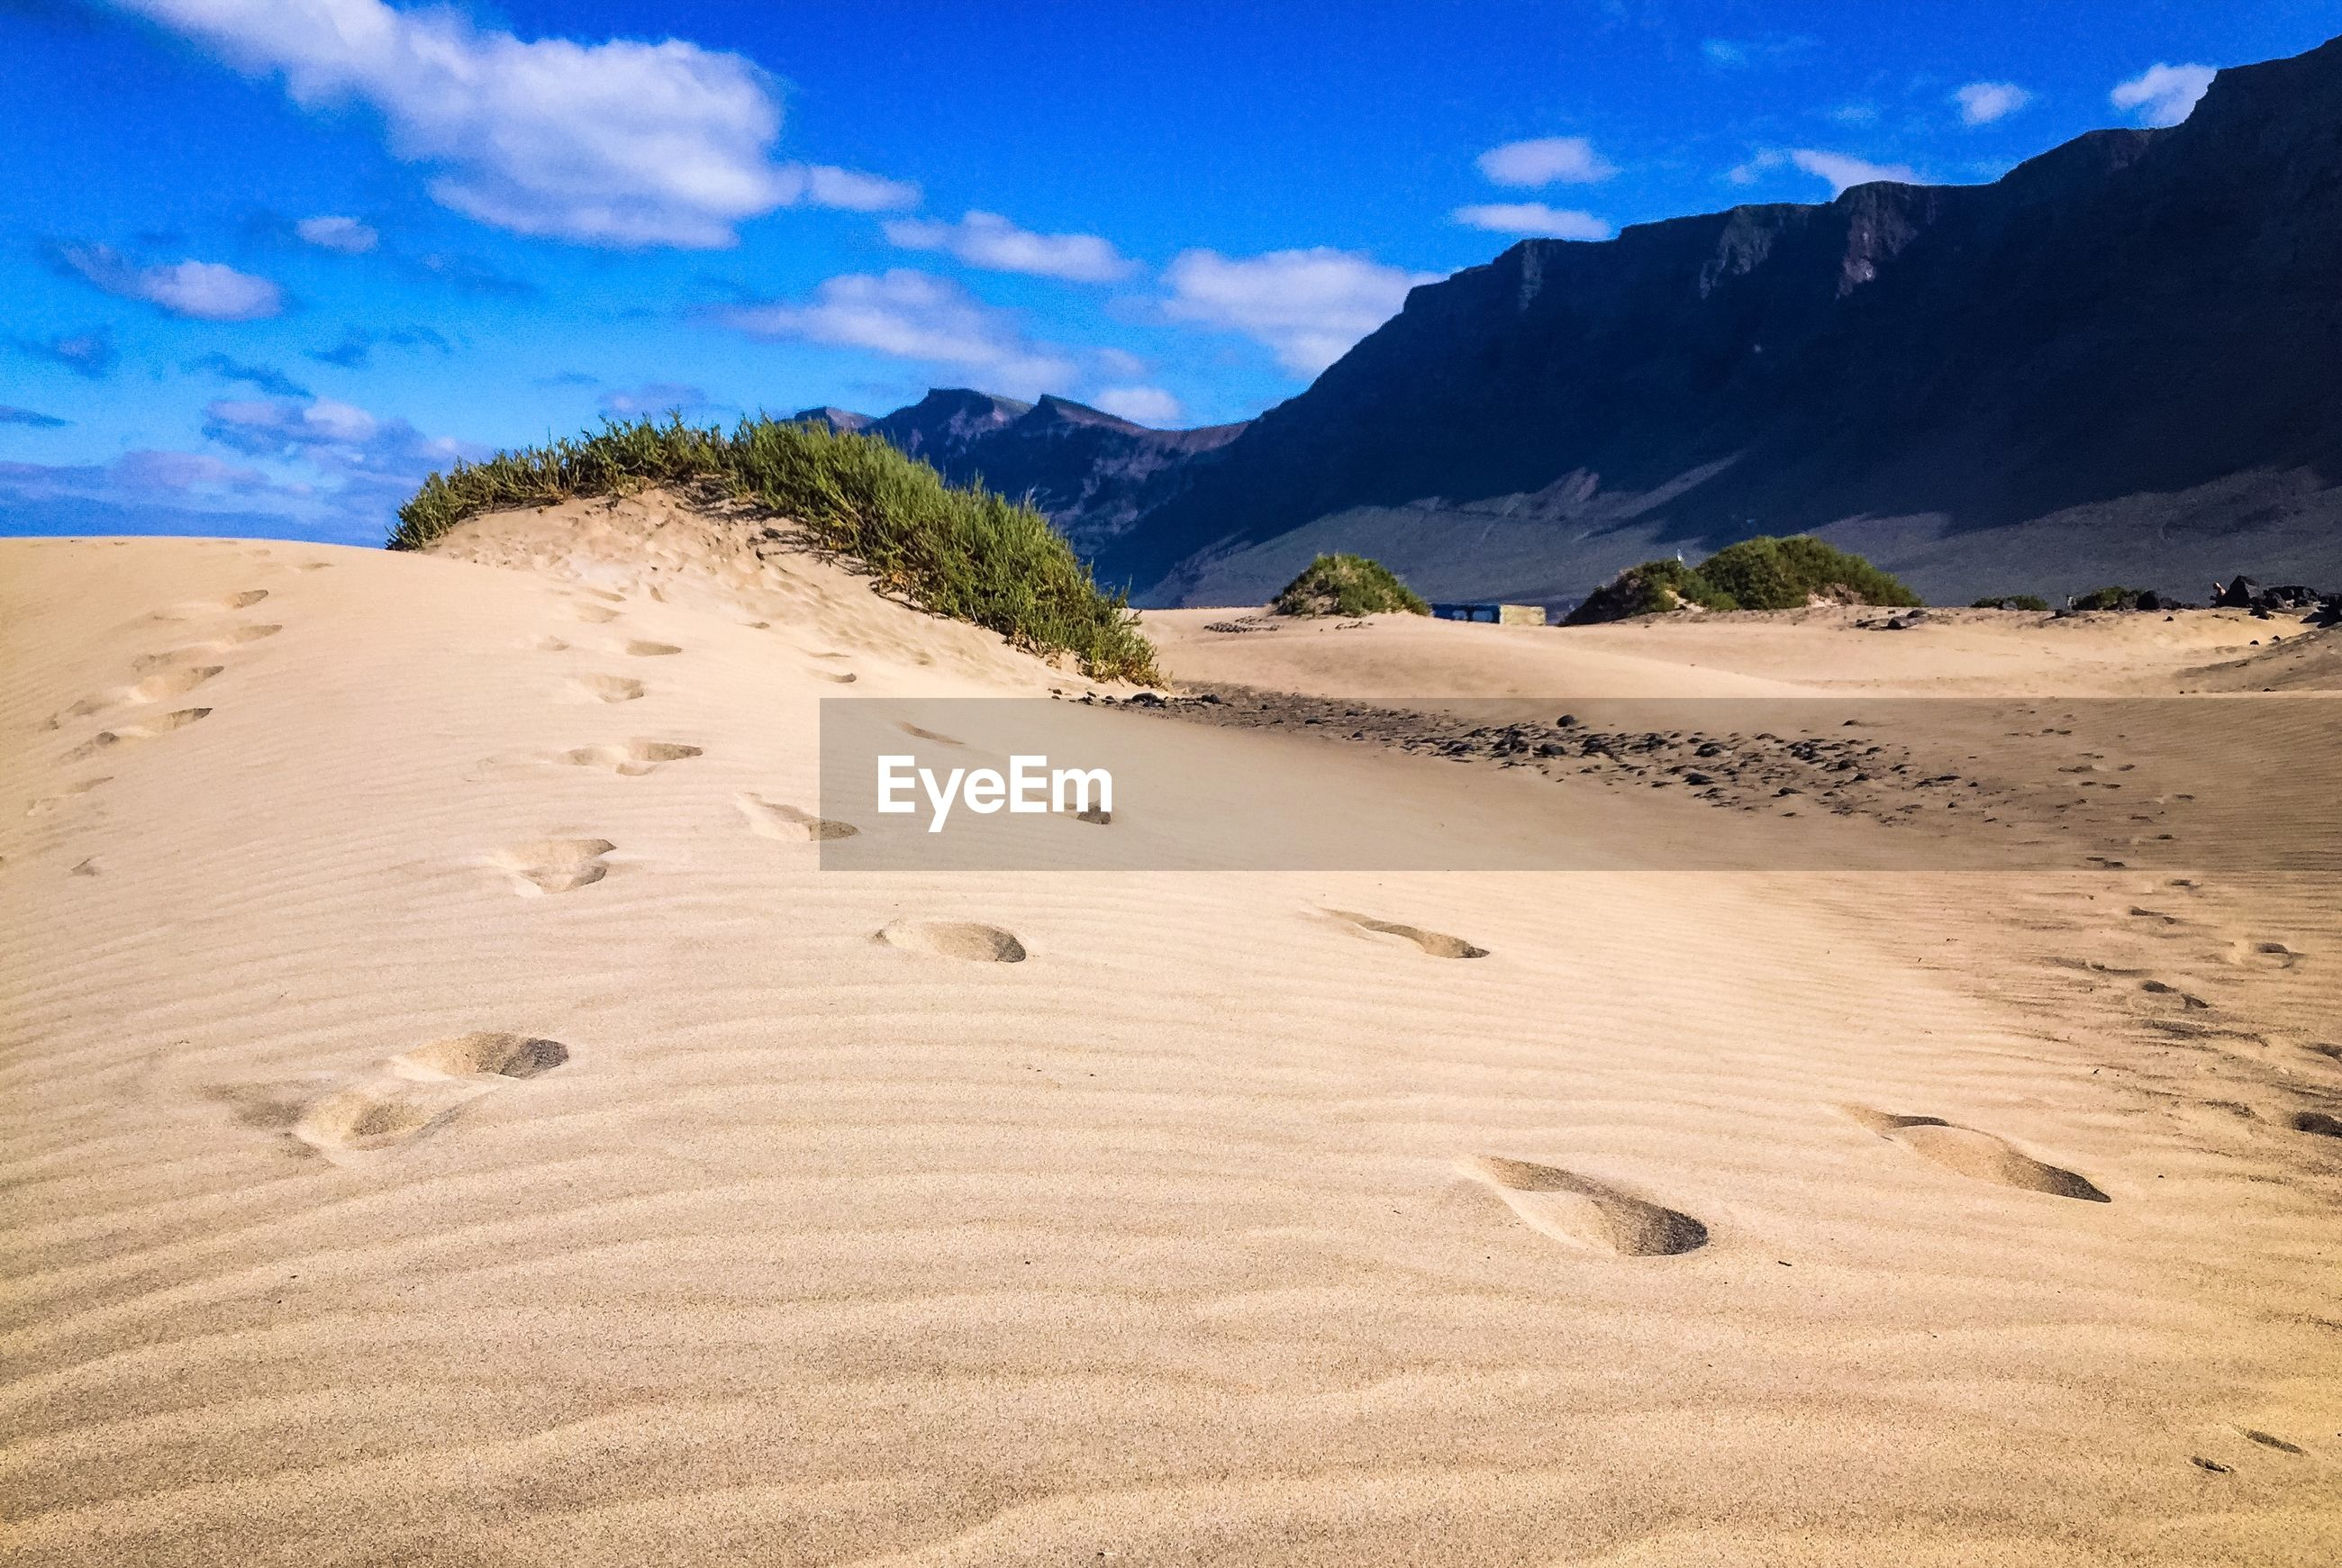 Footprints on sand in desert by mountains against sky